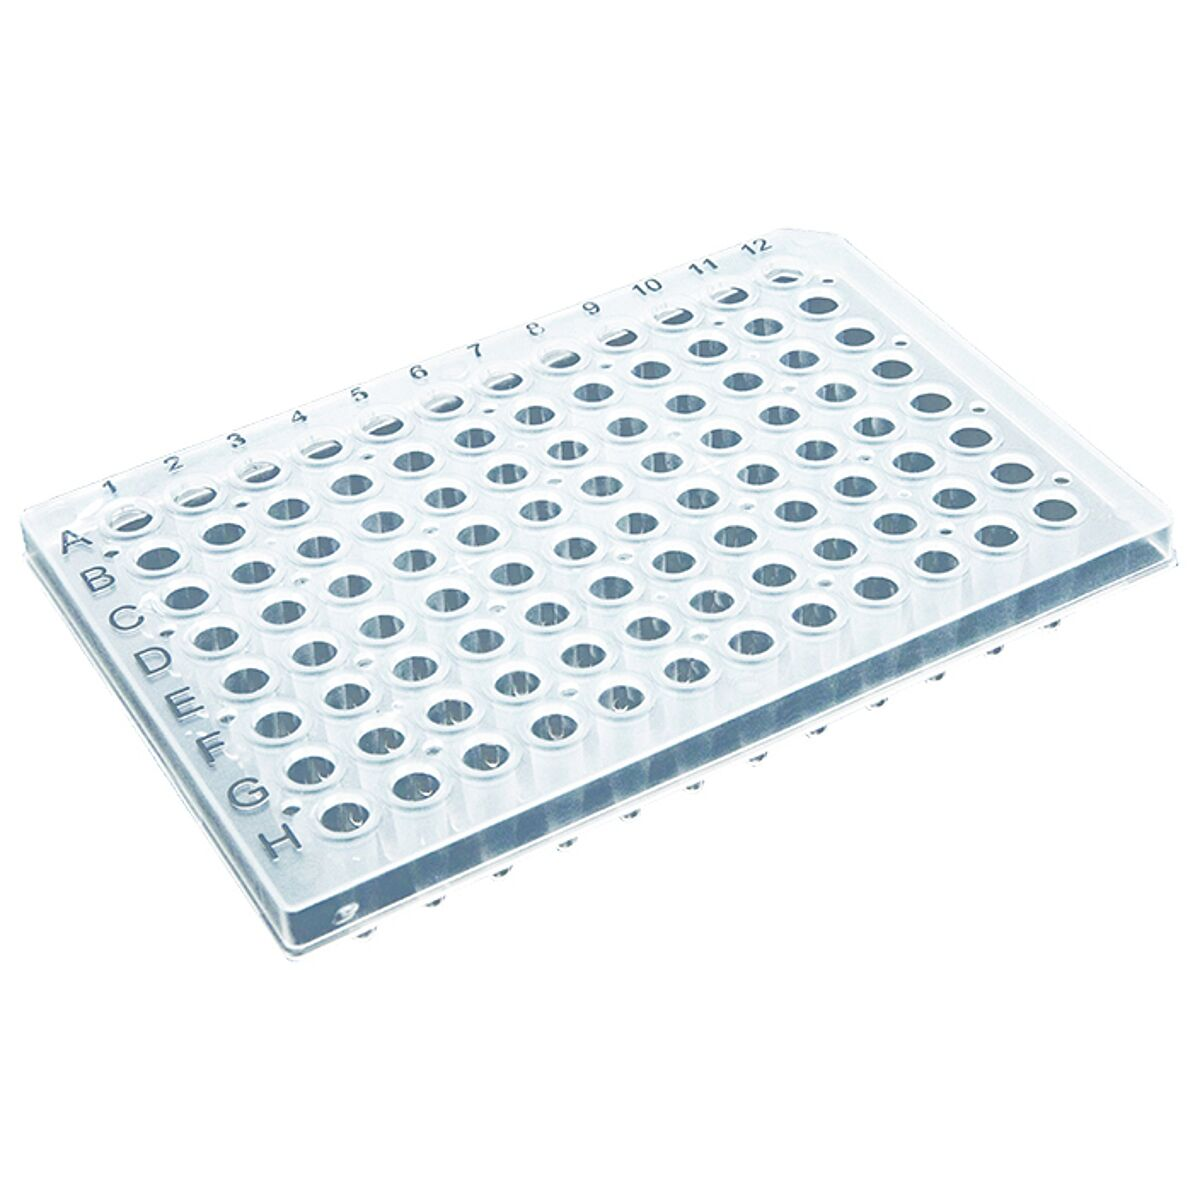 Nippon FastGene 0.3ml semi-skirted PCR plate photo